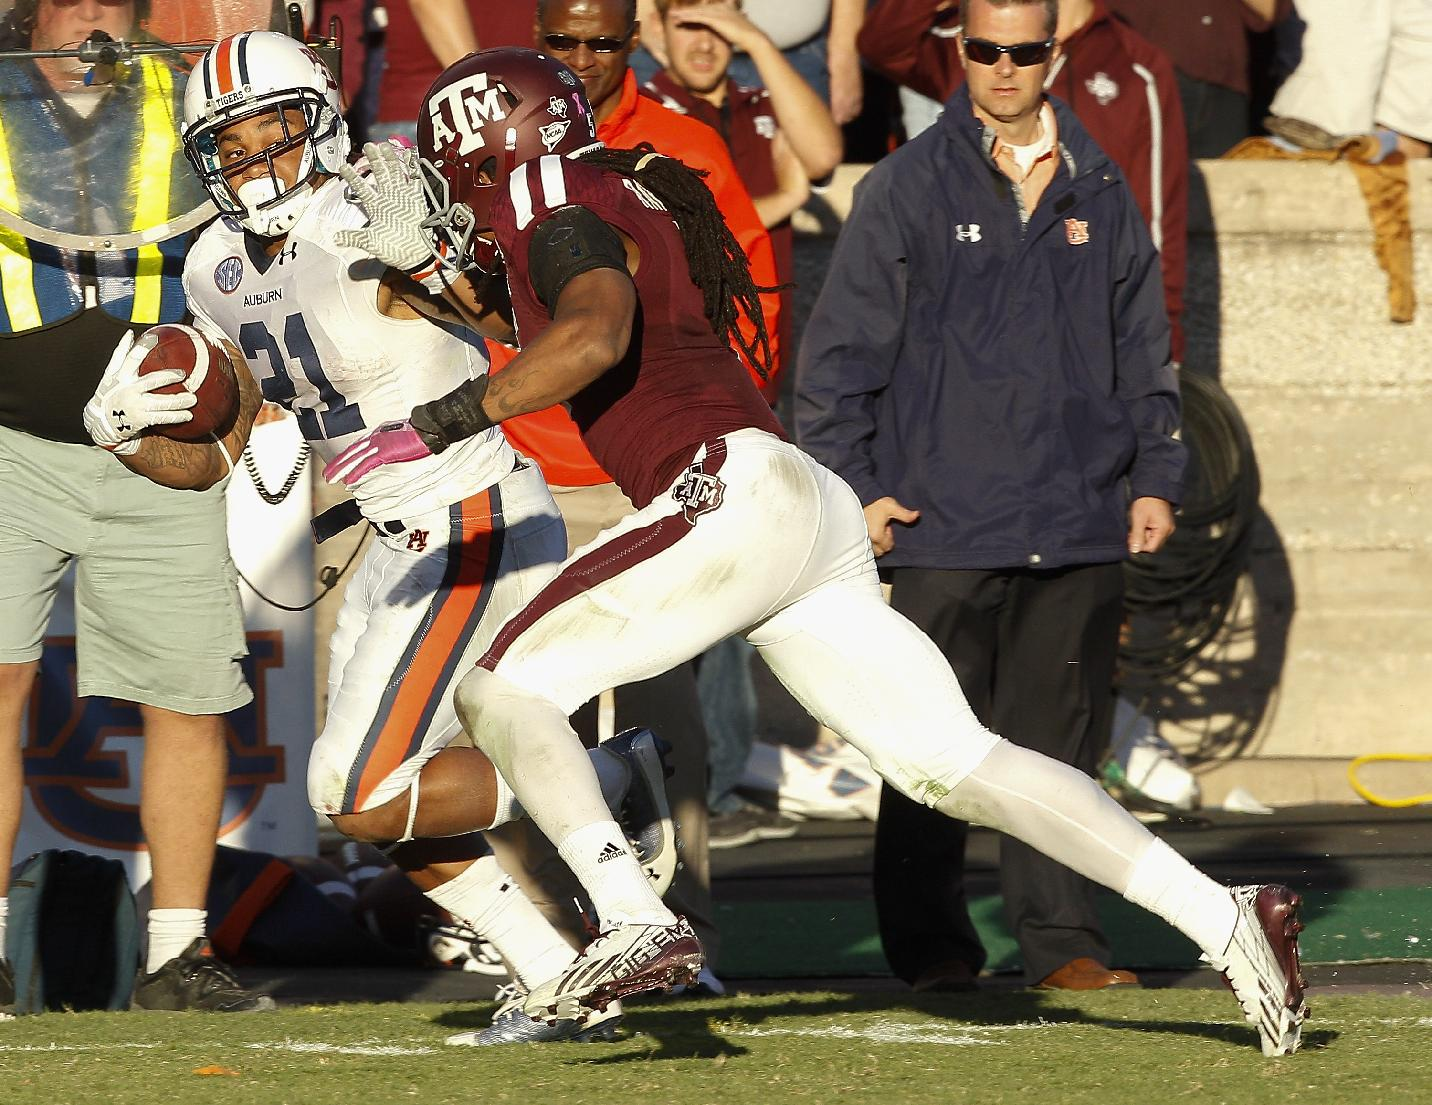 Auburn running back Tre Mason (21) fends off Texas A&M defensive back Floyd Raven Sr. (5)  for a 53-yard run in the fourth quarter of an NCAA college football game Saturday, Oct. 19, 2013, in College Station, Texas. Auburn won 45-41